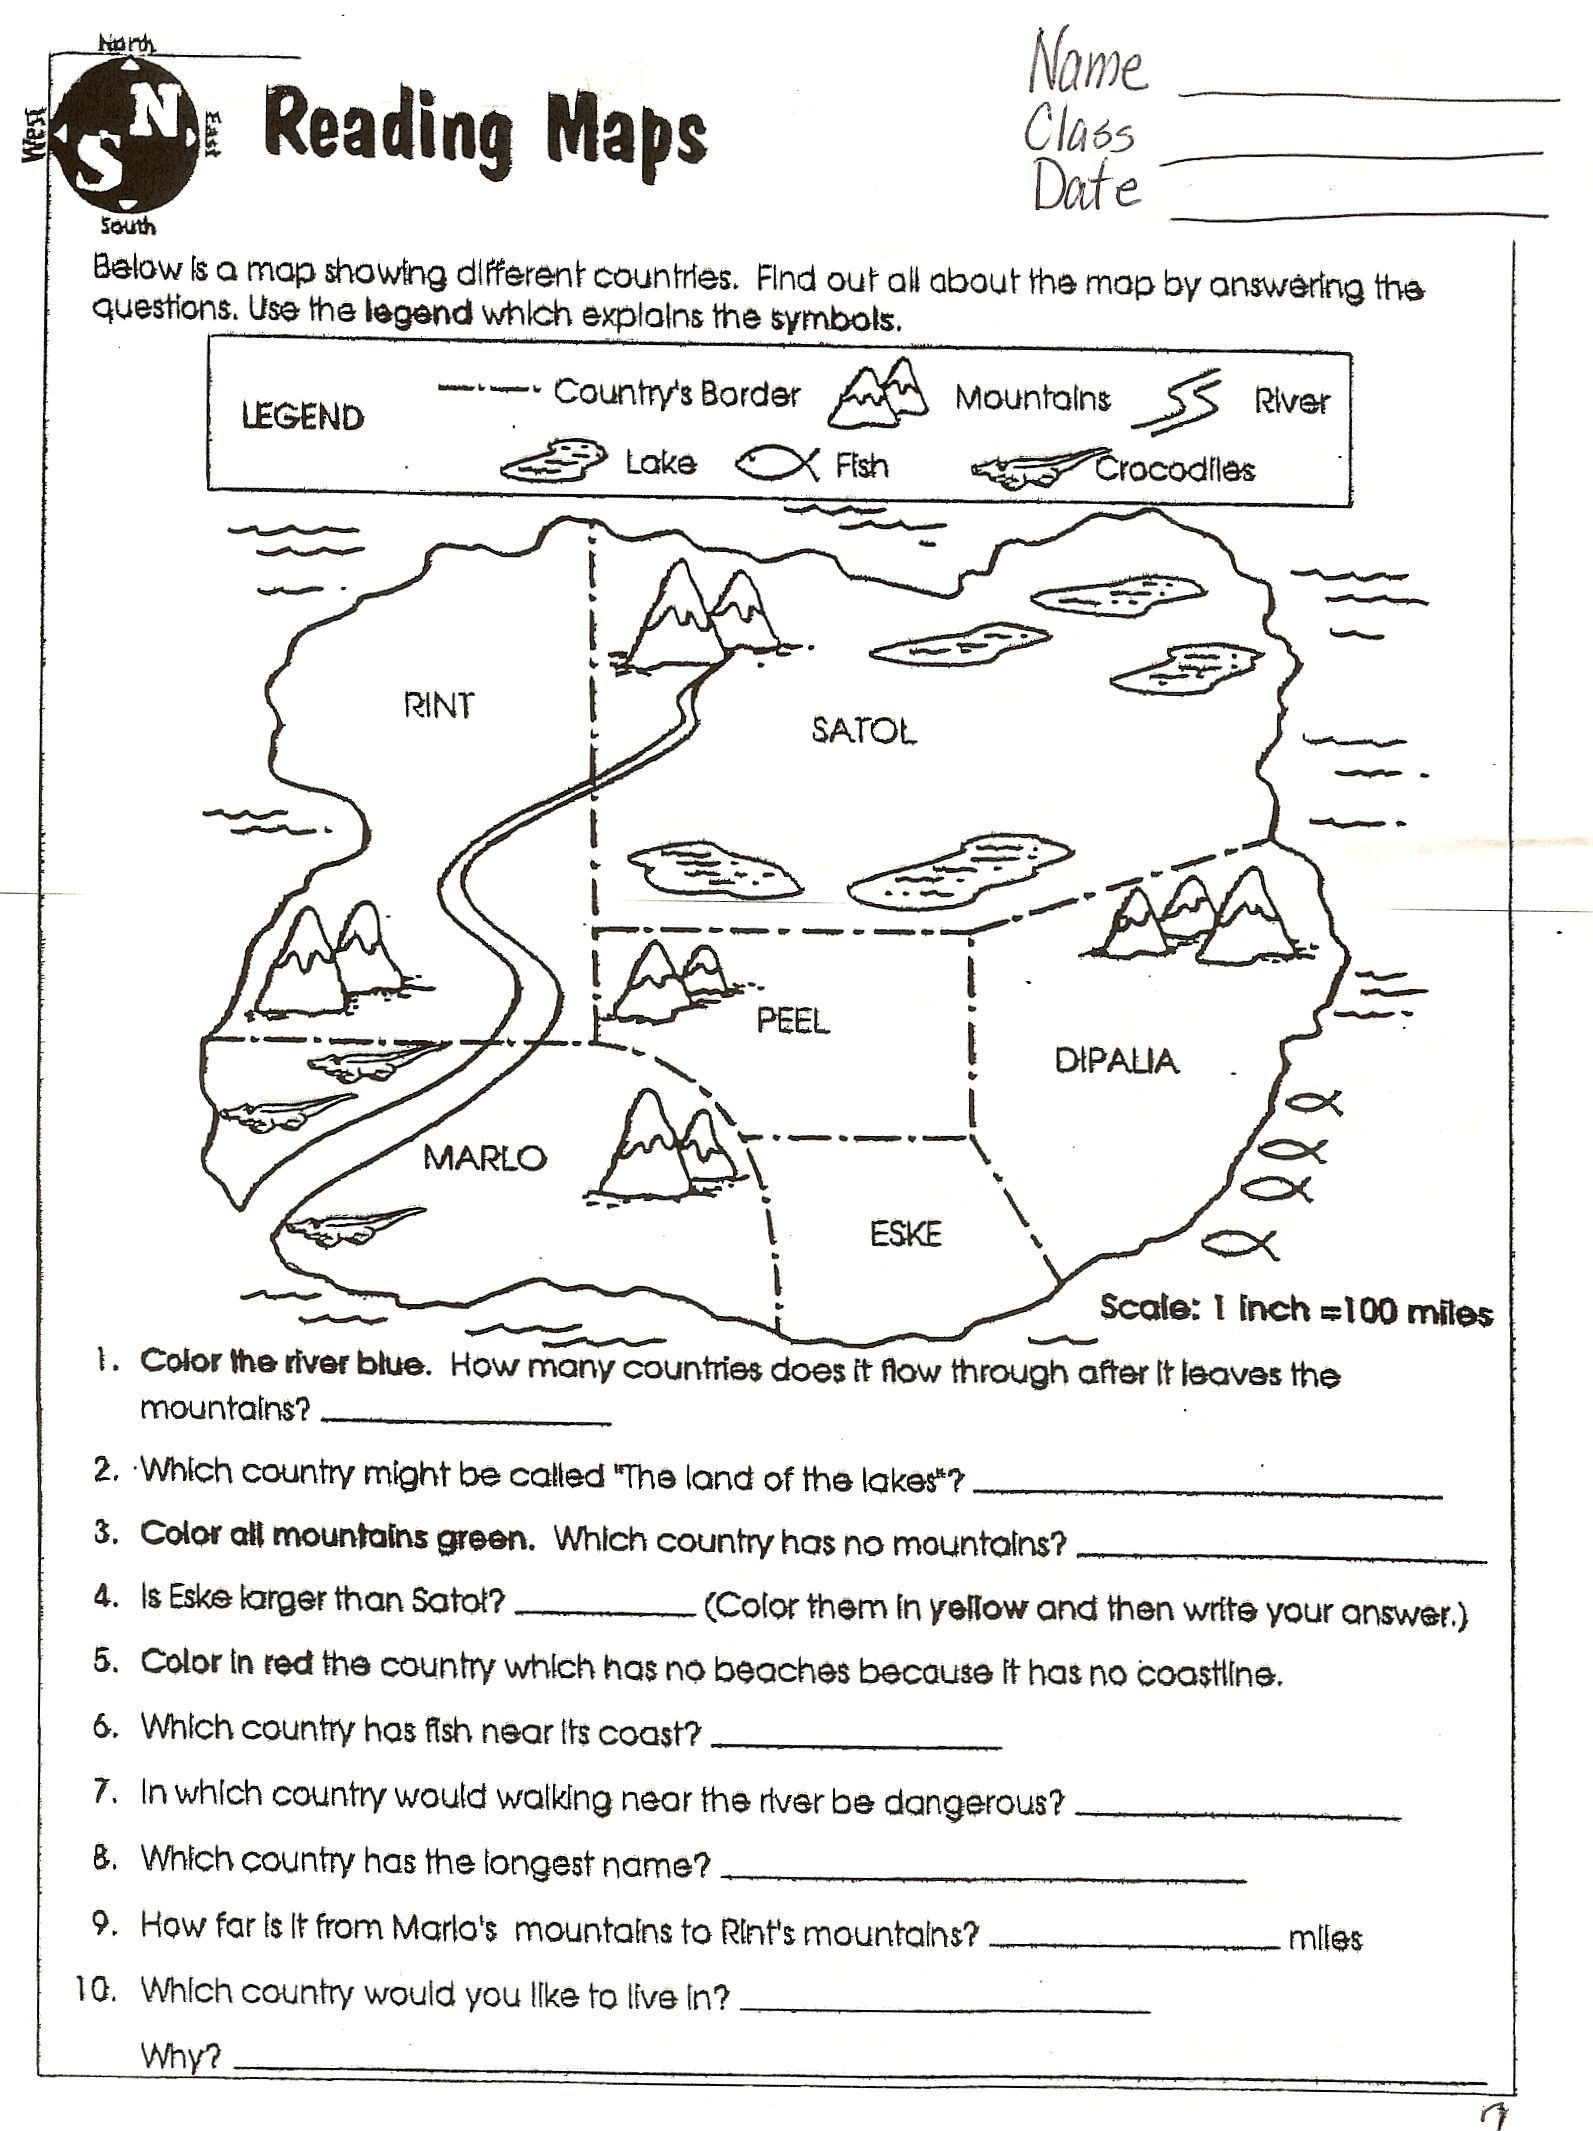 Social Studies Worksheets 8th Grade Applied Math Test Cinco De Mayo Kindergarten Worksheets